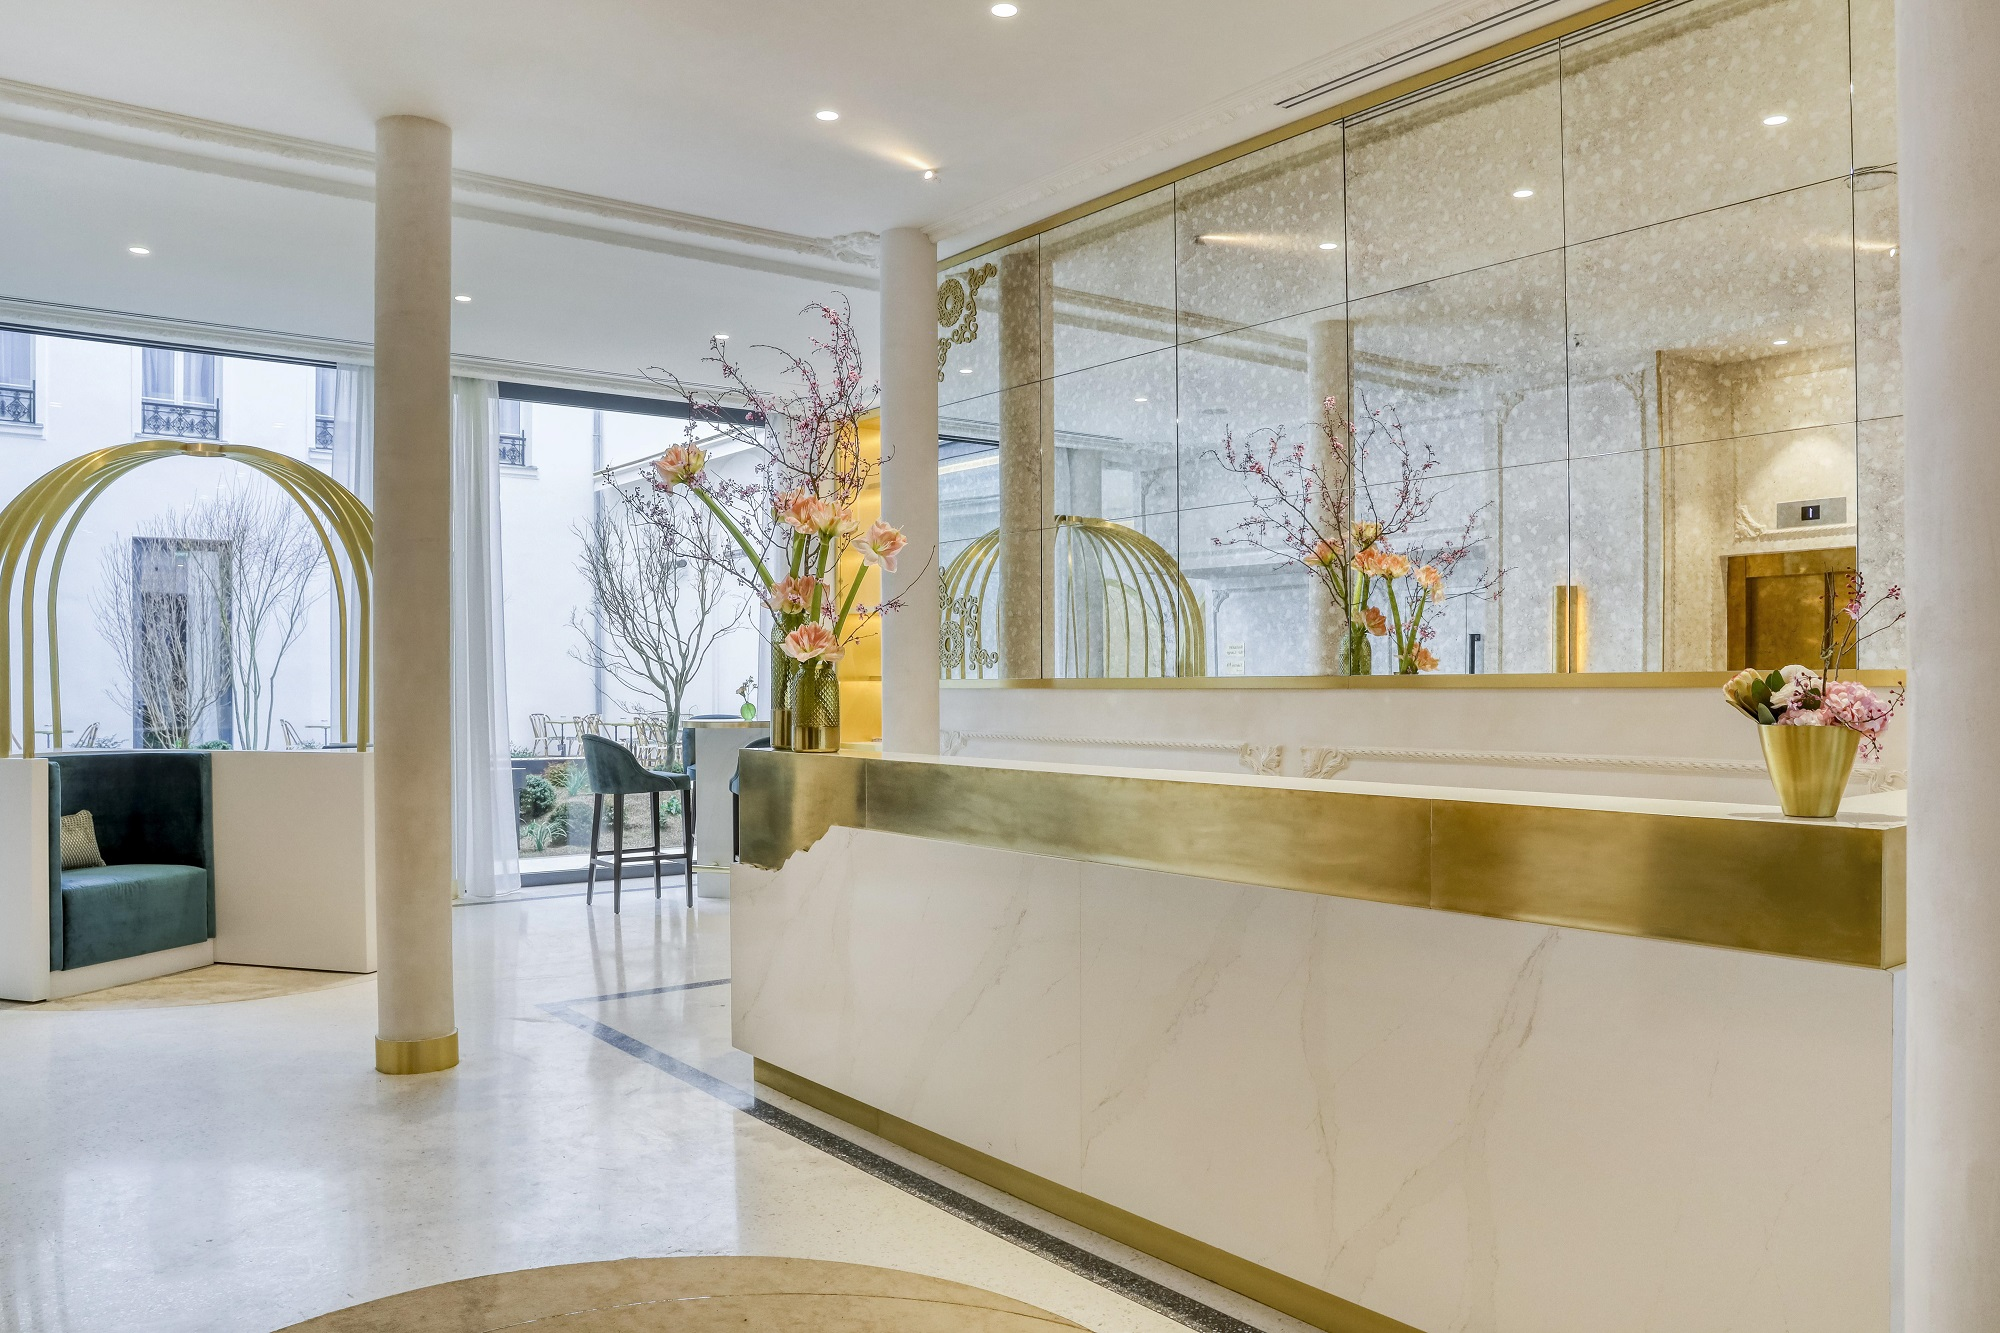 338/Vendome/Services/maison_albar_hotels_le_vendome_reception.jpg